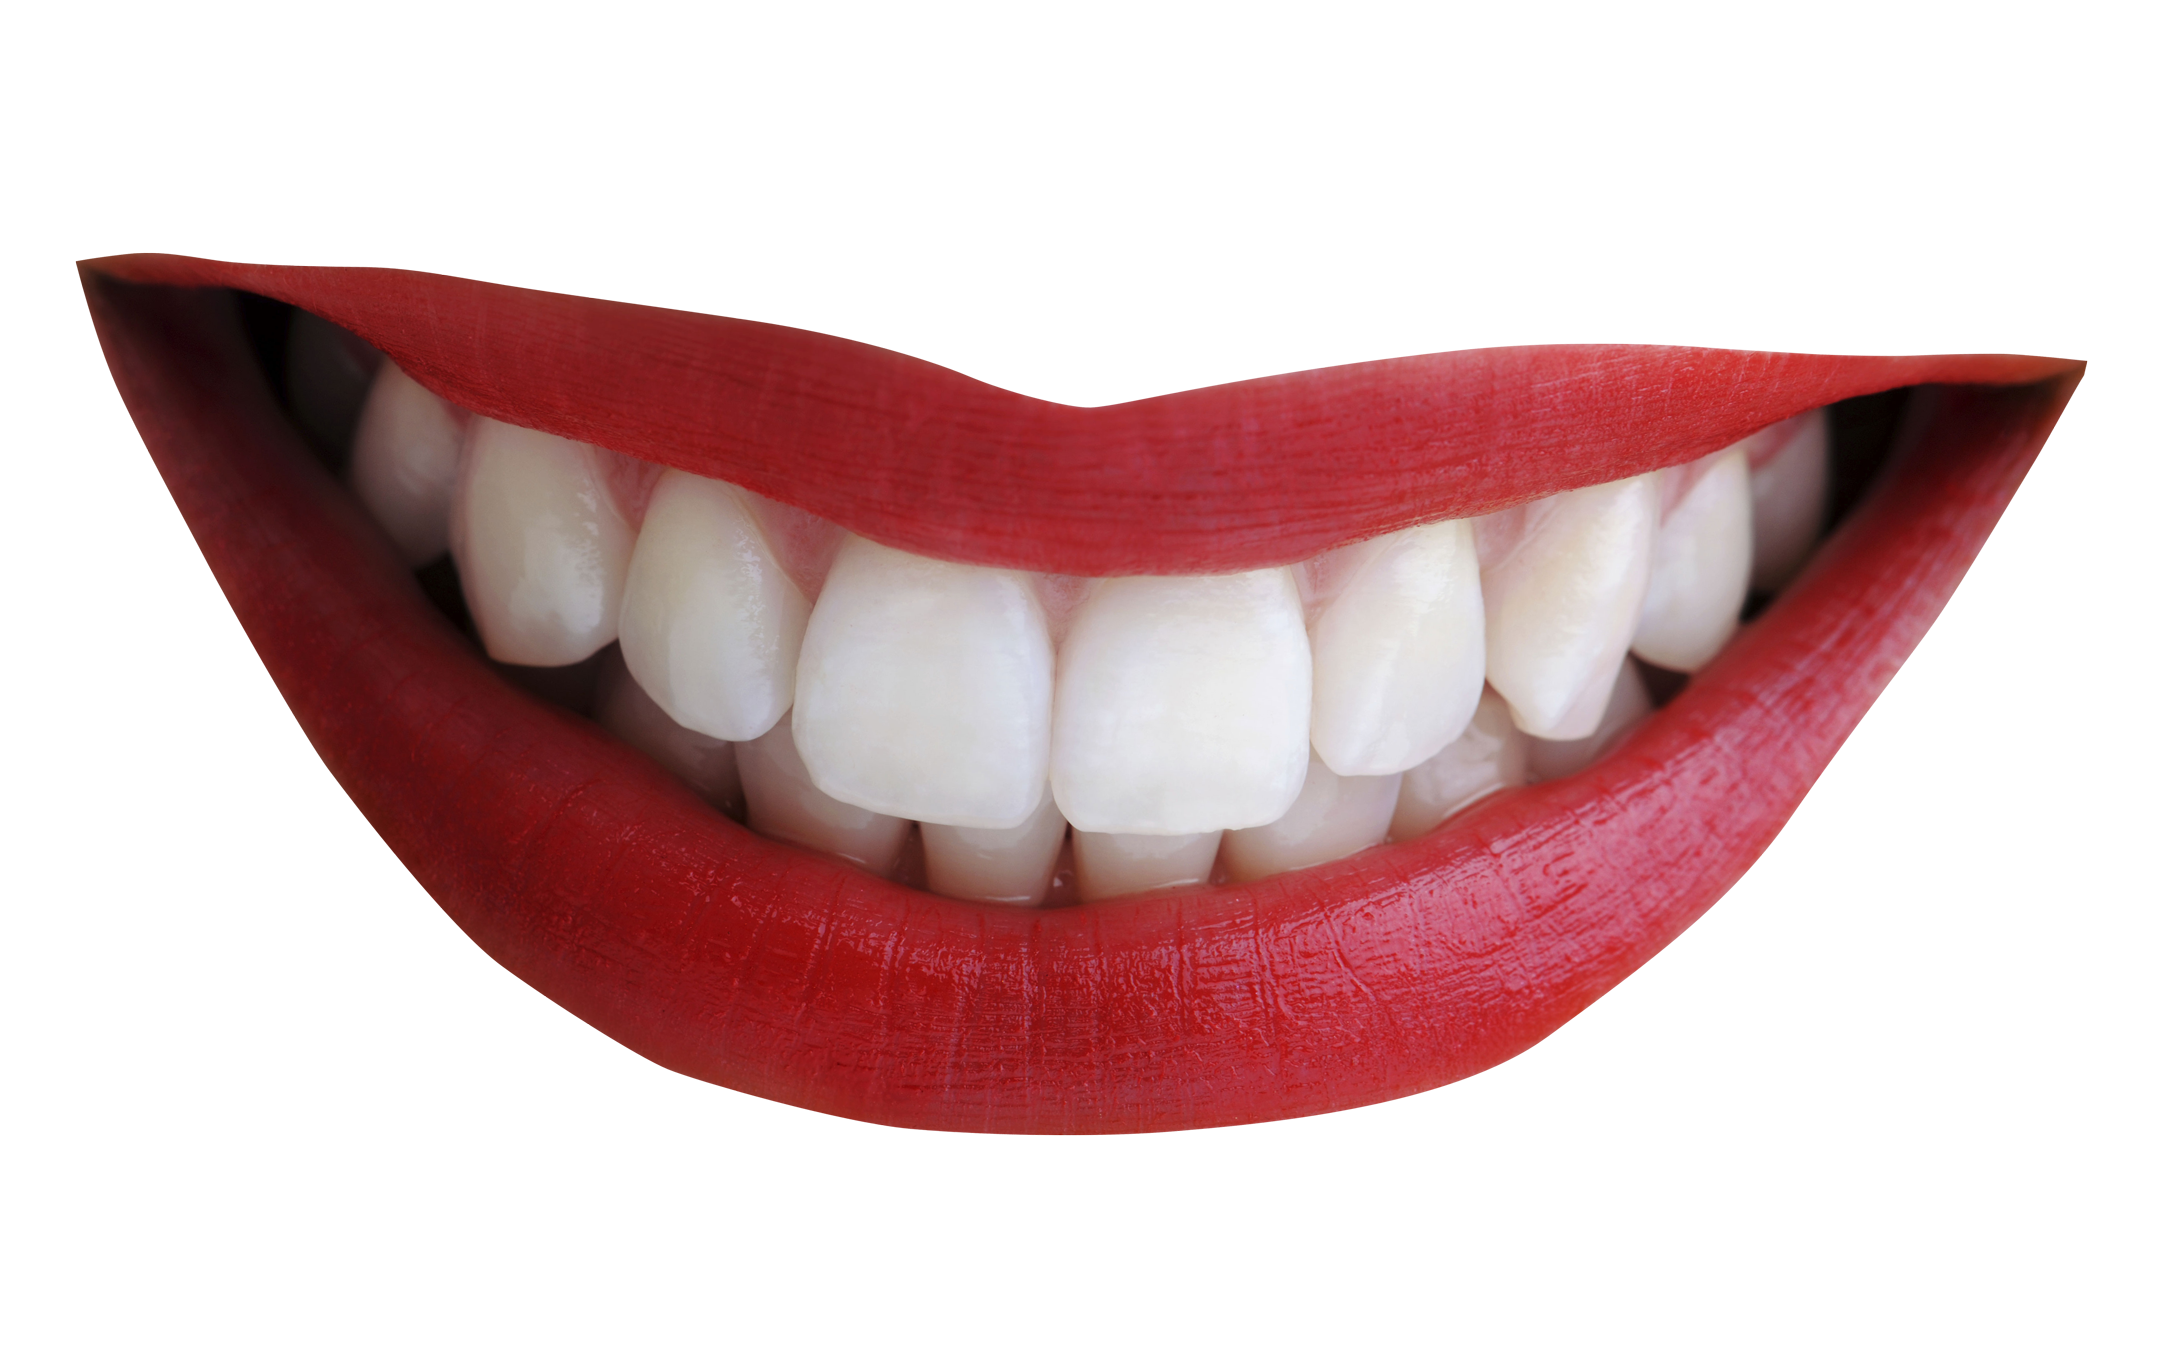 Mouth Smile PNG Image Orthodontics, Mouth, Png images